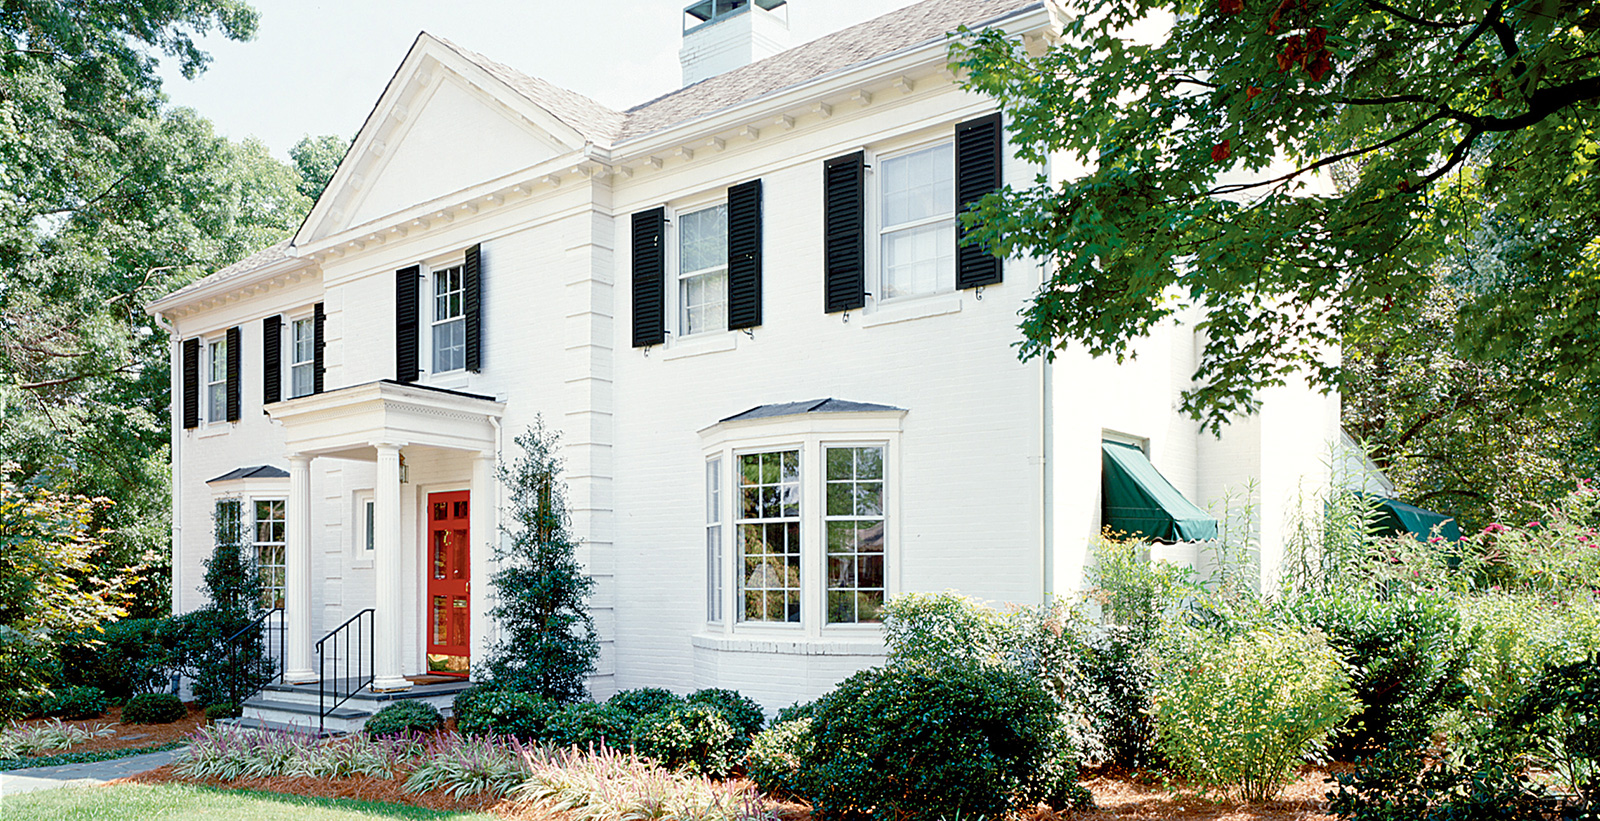 Colonial themed house with white walls, white trim, black shutters, and red door.